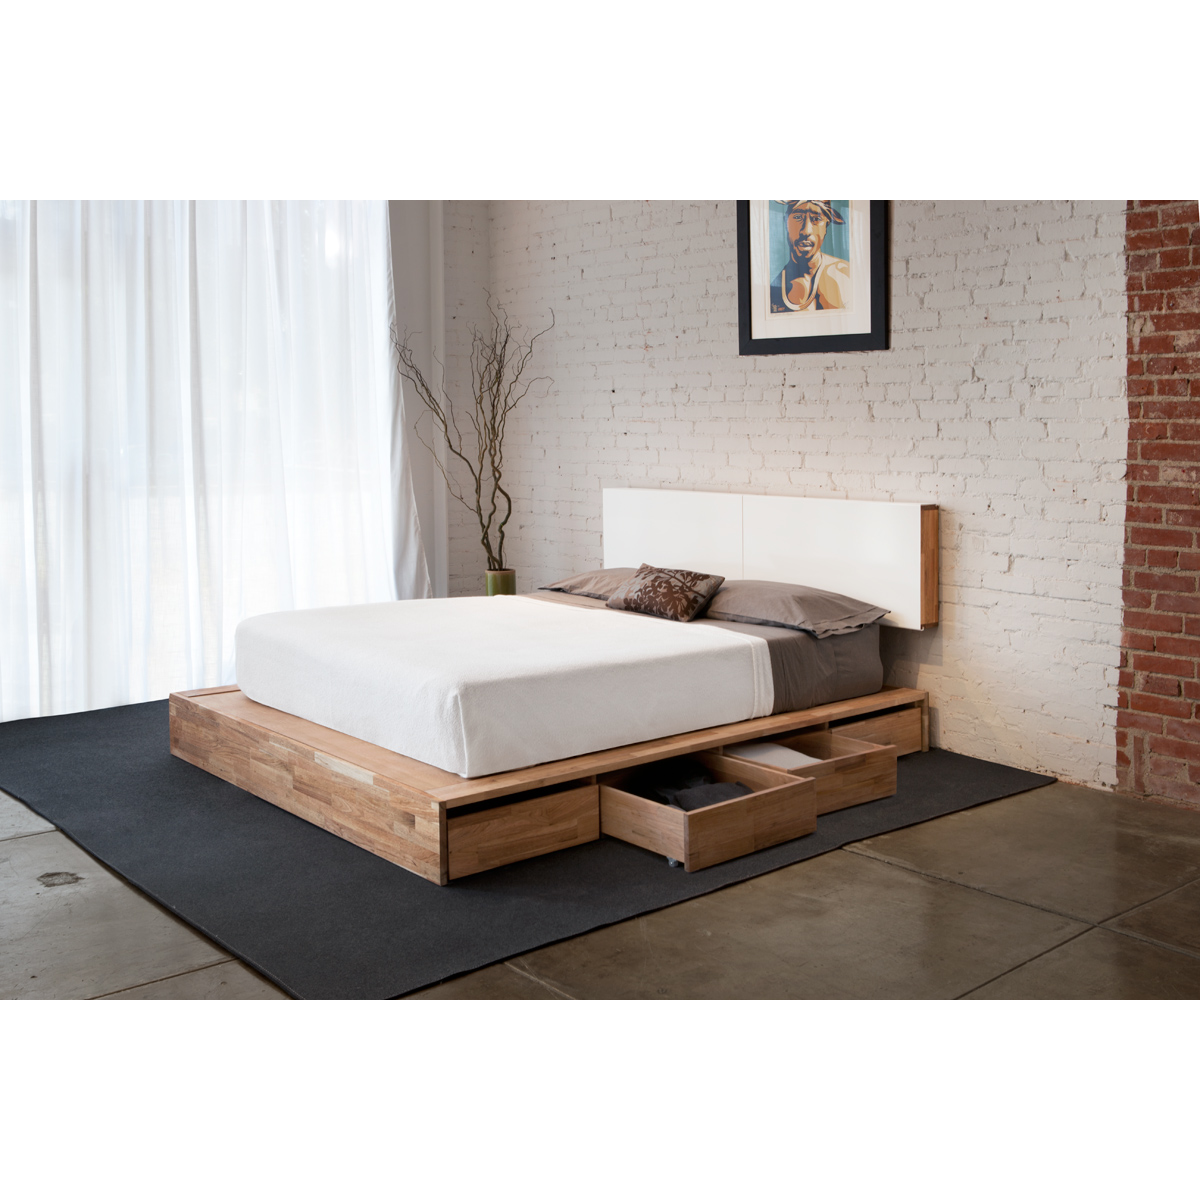 Full Bed Frame with Storage, A Smart Solution for Extra Storage Space : HomesFeed